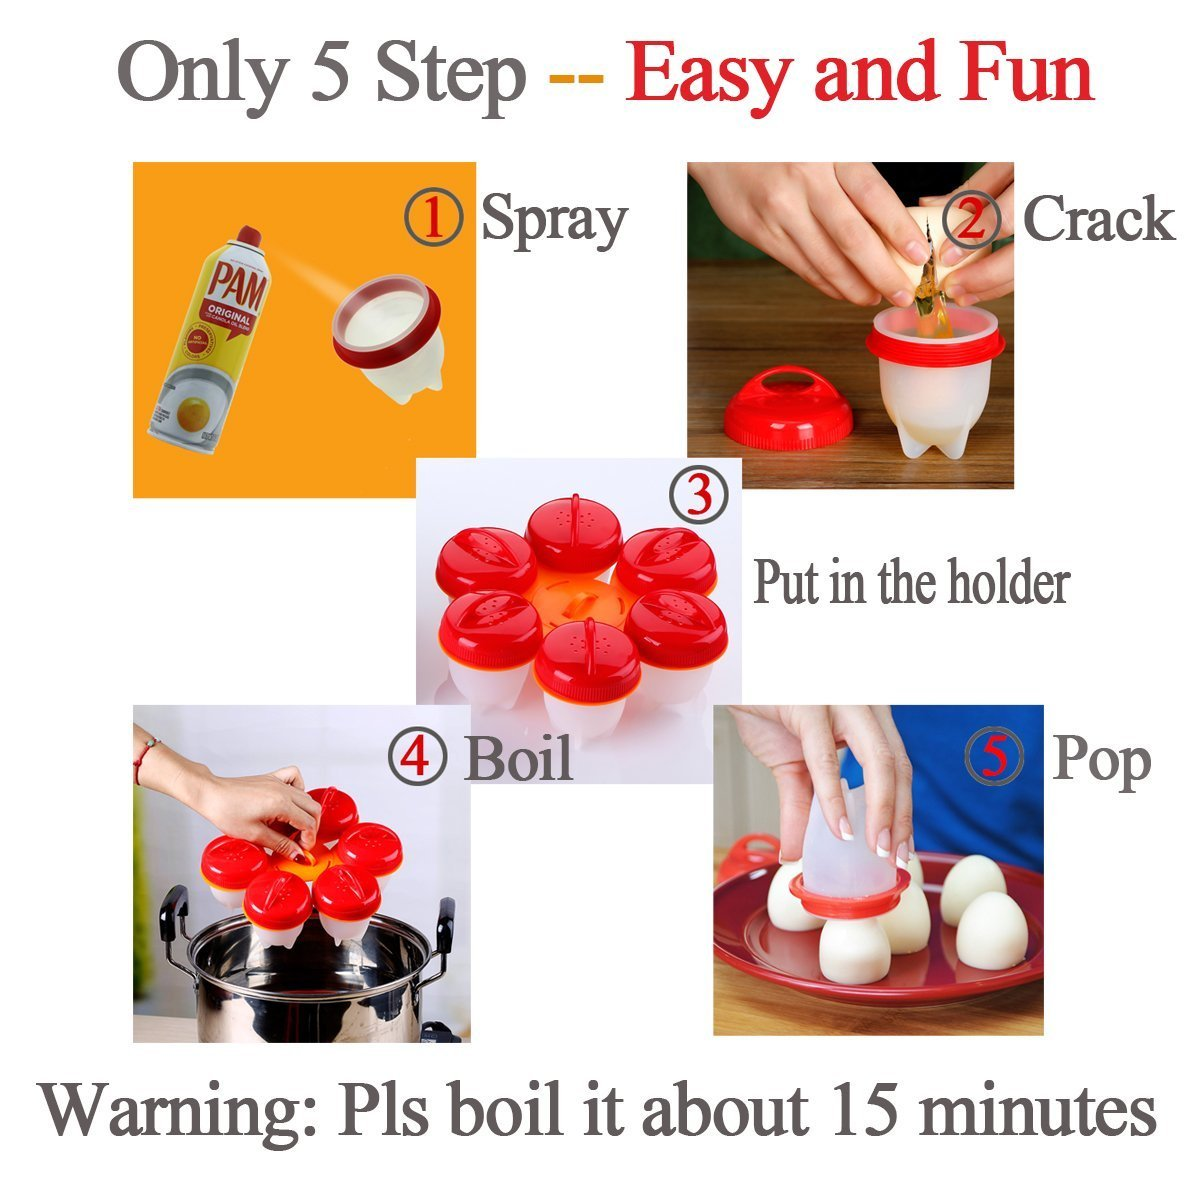 Nonstick Silicone Egg Cooker - Hard Boiled Eggs without the Shell, Eggies AS SEEN ON TV,6 Pack by NICPAY (Image #5)